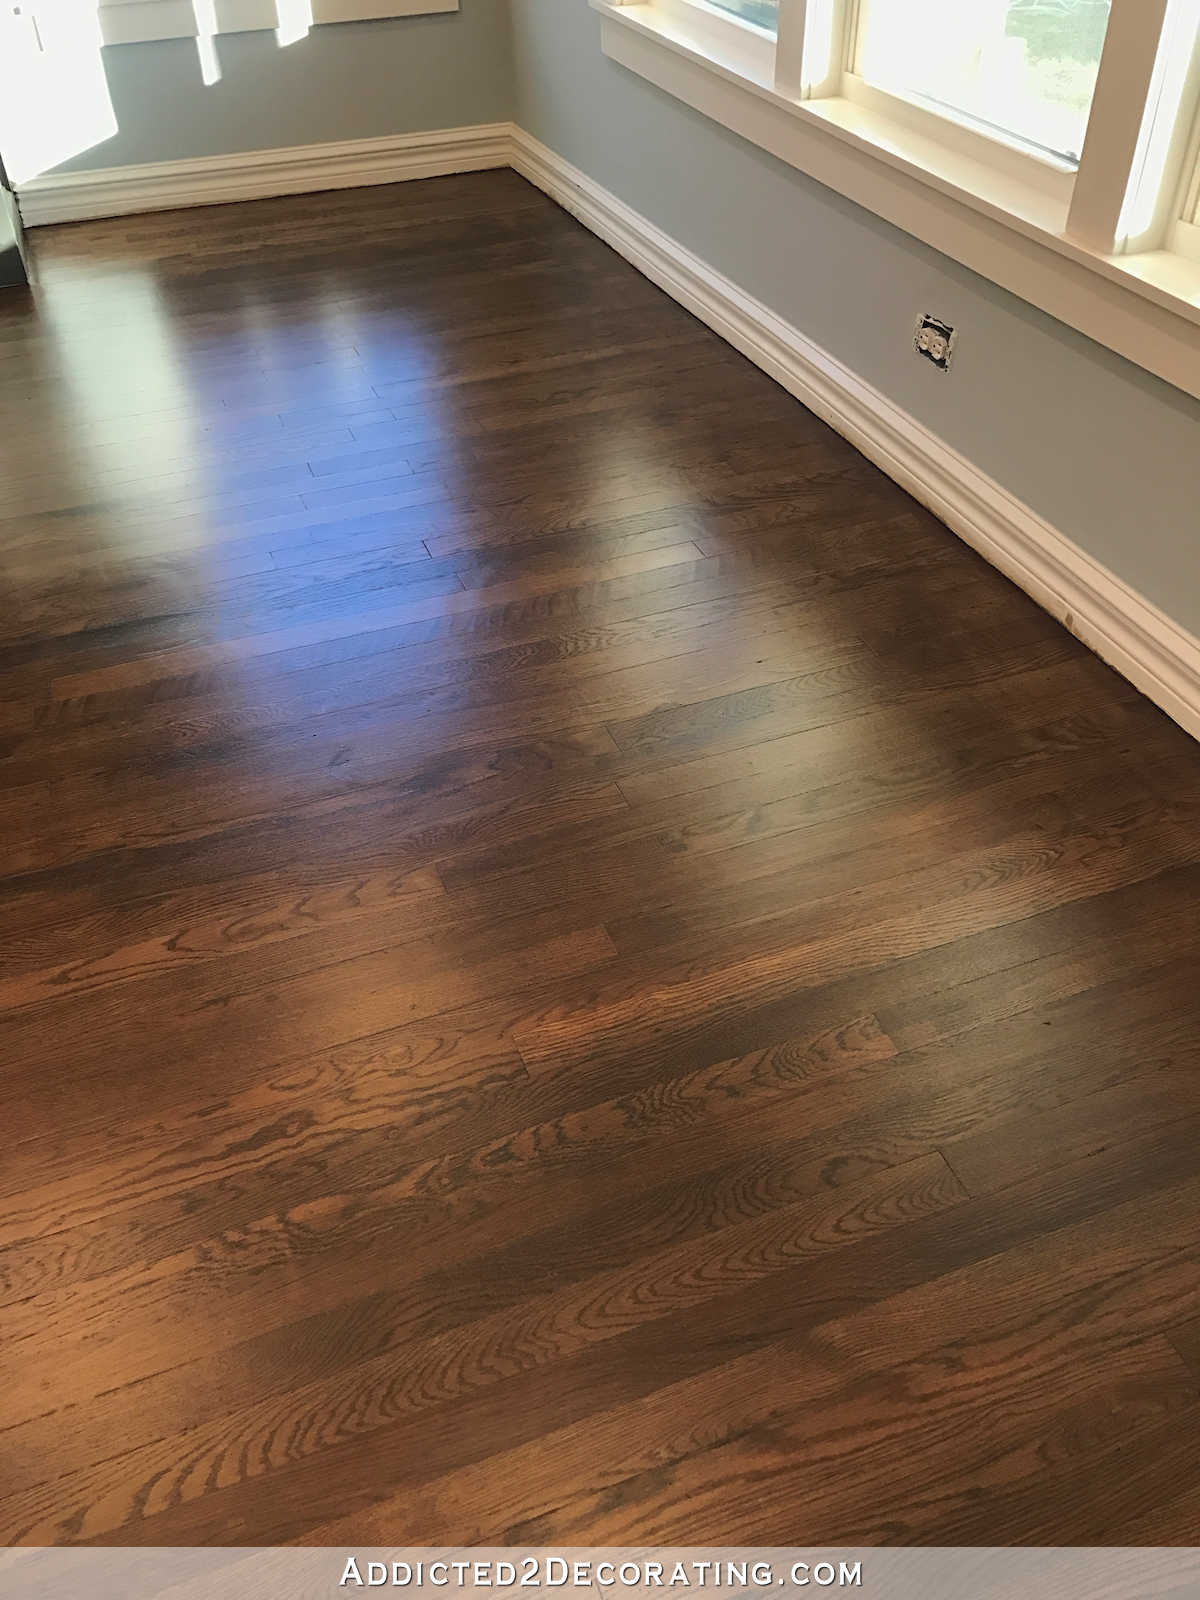 oak wood floor living room leather furniture my newly refinished red hardwood floors addicted 2 decorating by the windows